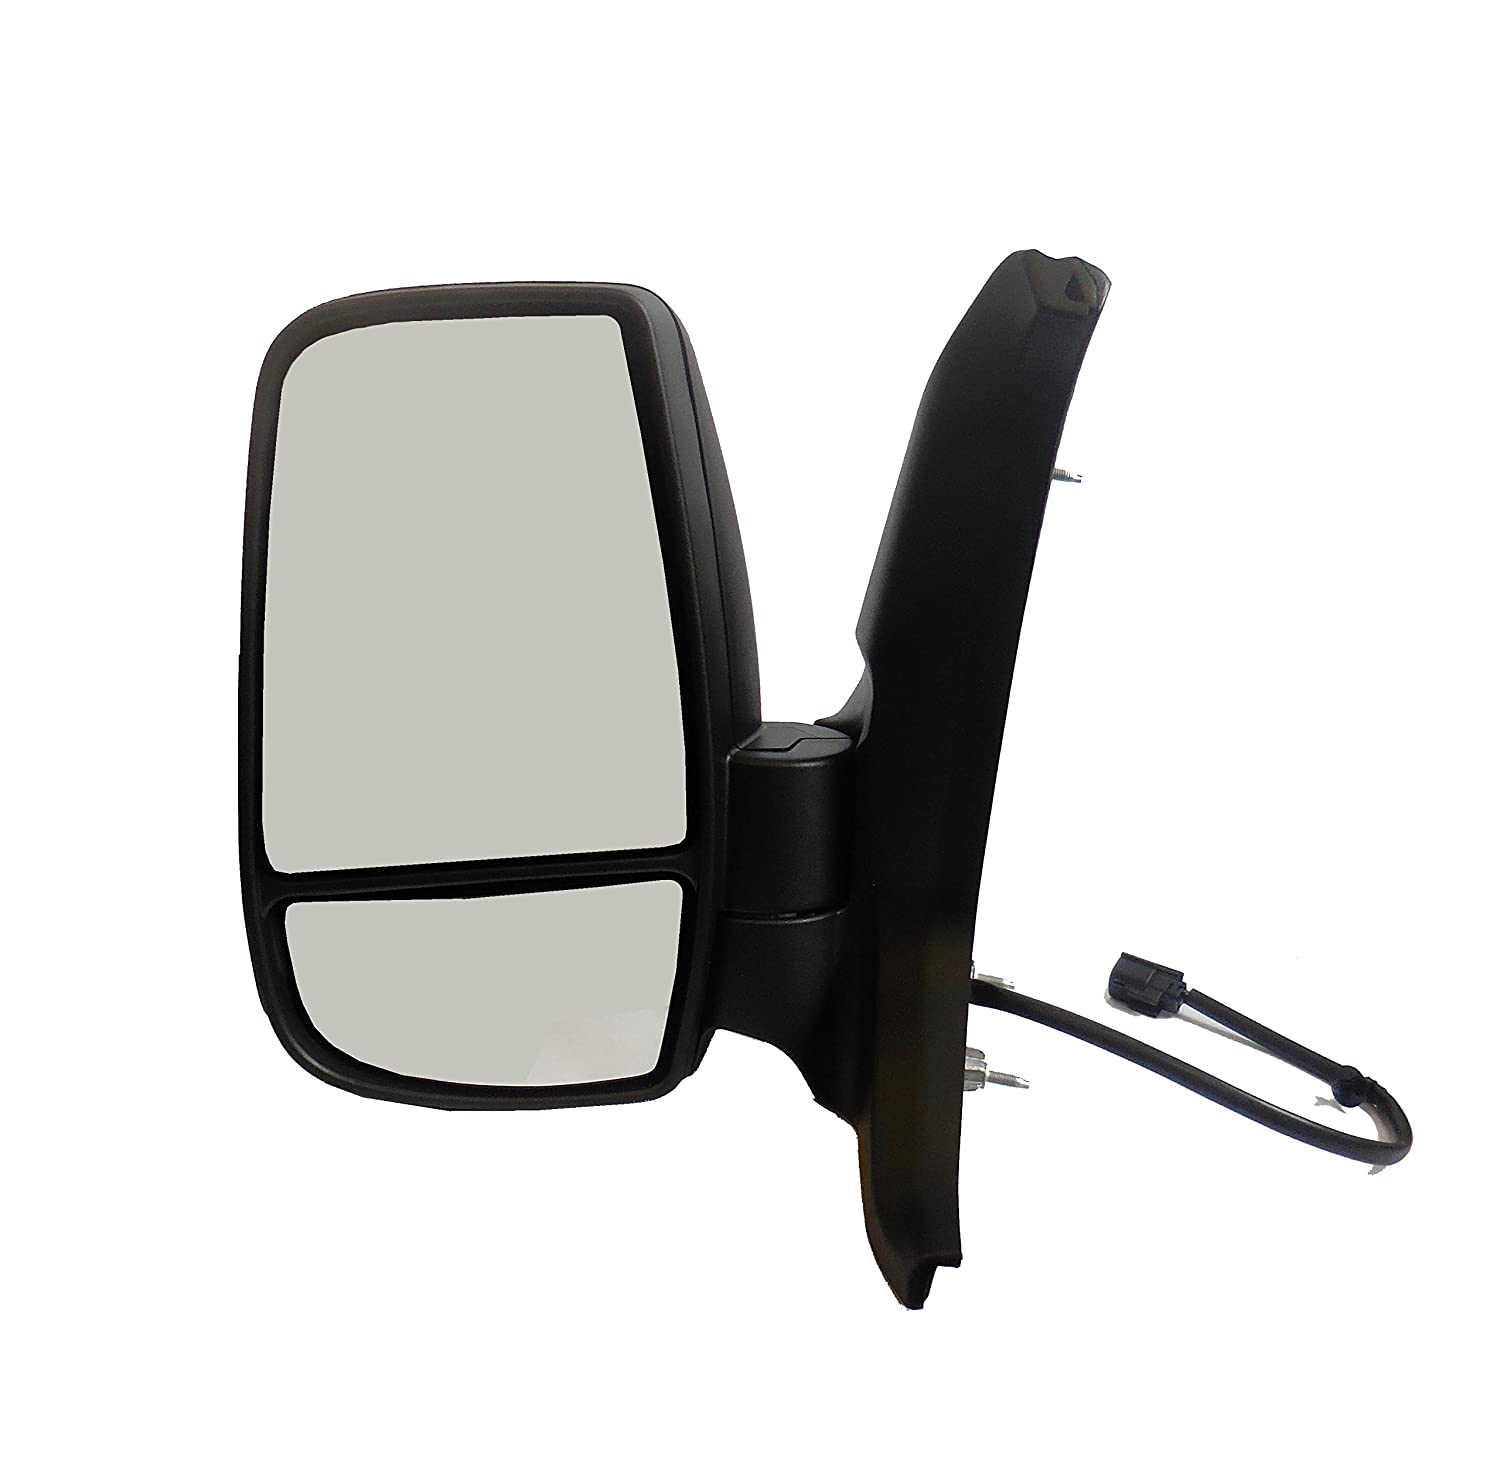 Drivers Side Exterior Ford Transit Rear View Mirror Assembly EK4Z-17683-DB